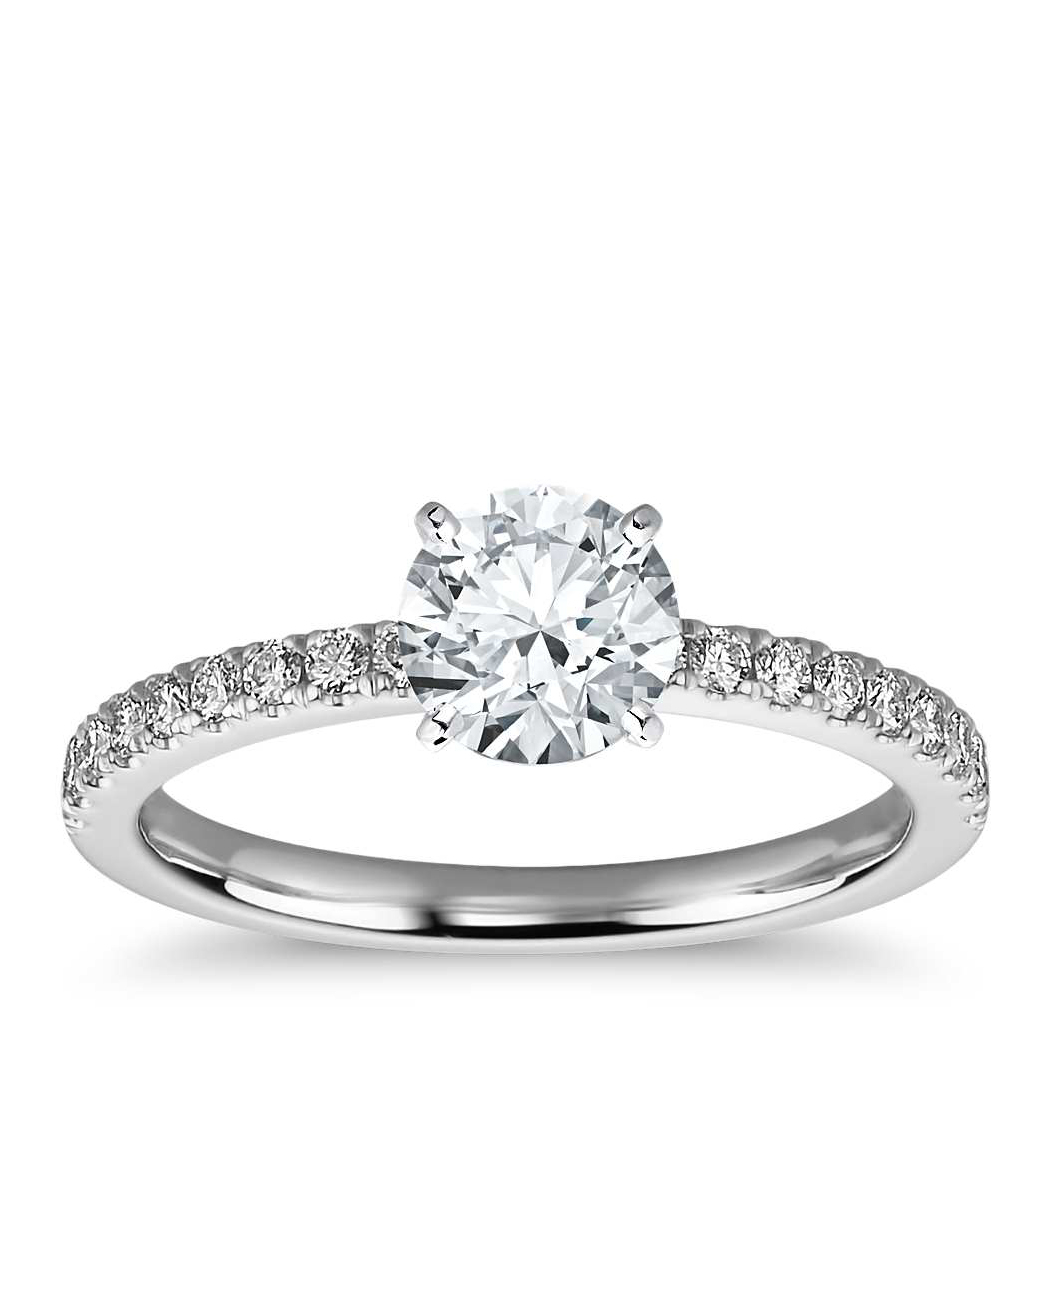 Blue Nile Petite Pave Diamond Engagement Ring